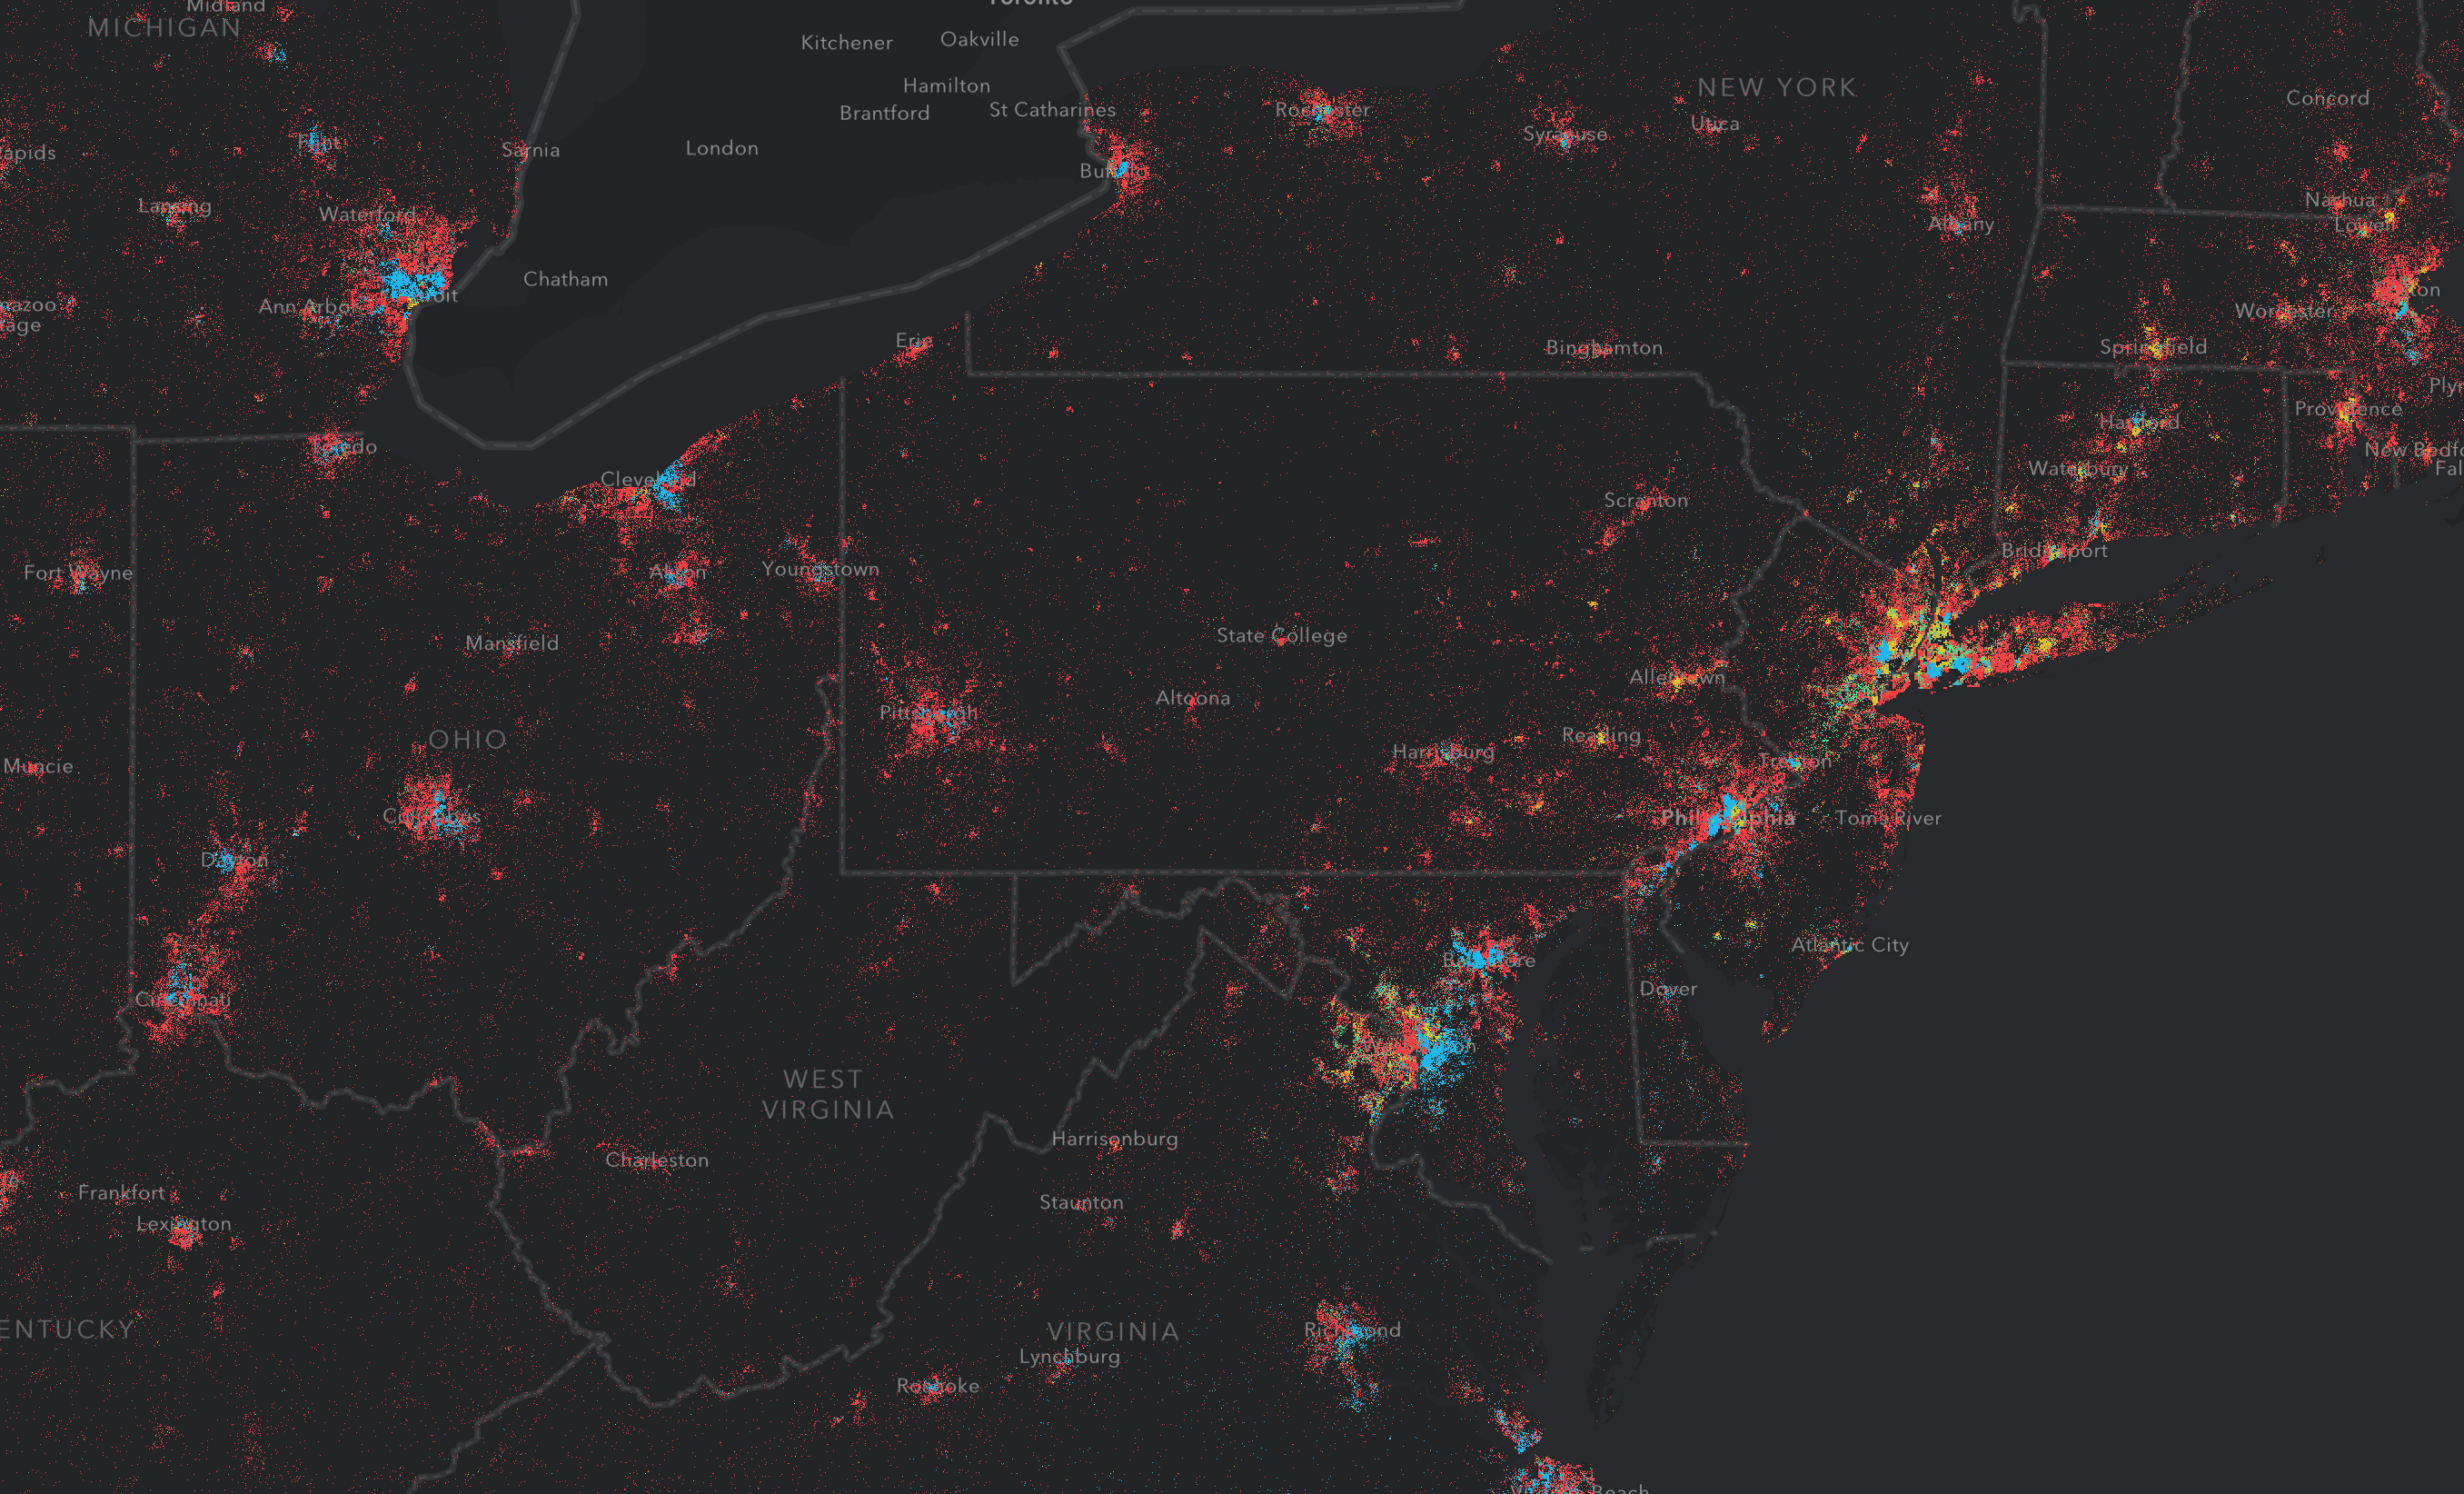 One dot represents 1600 people at a county scale.